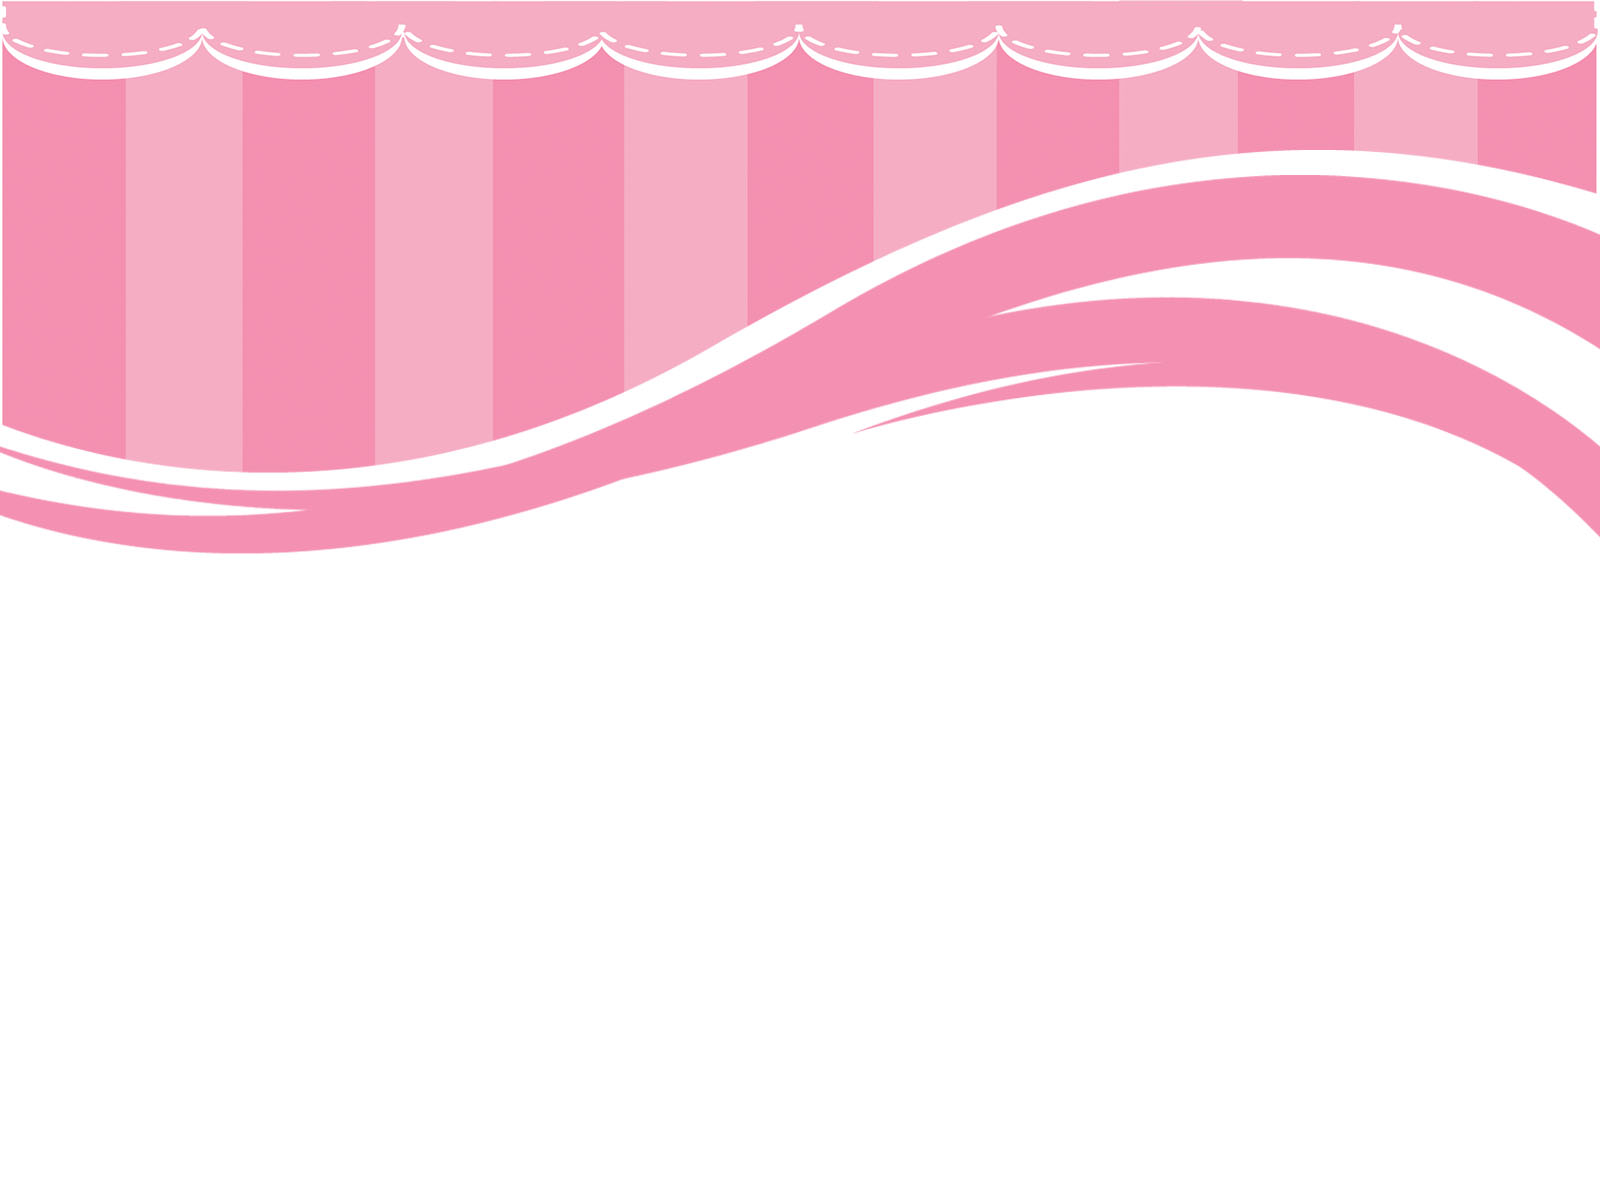 Wallpaper Paris Pink Cute Pink Powerpoint Free Ppt Backgrounds And Templates